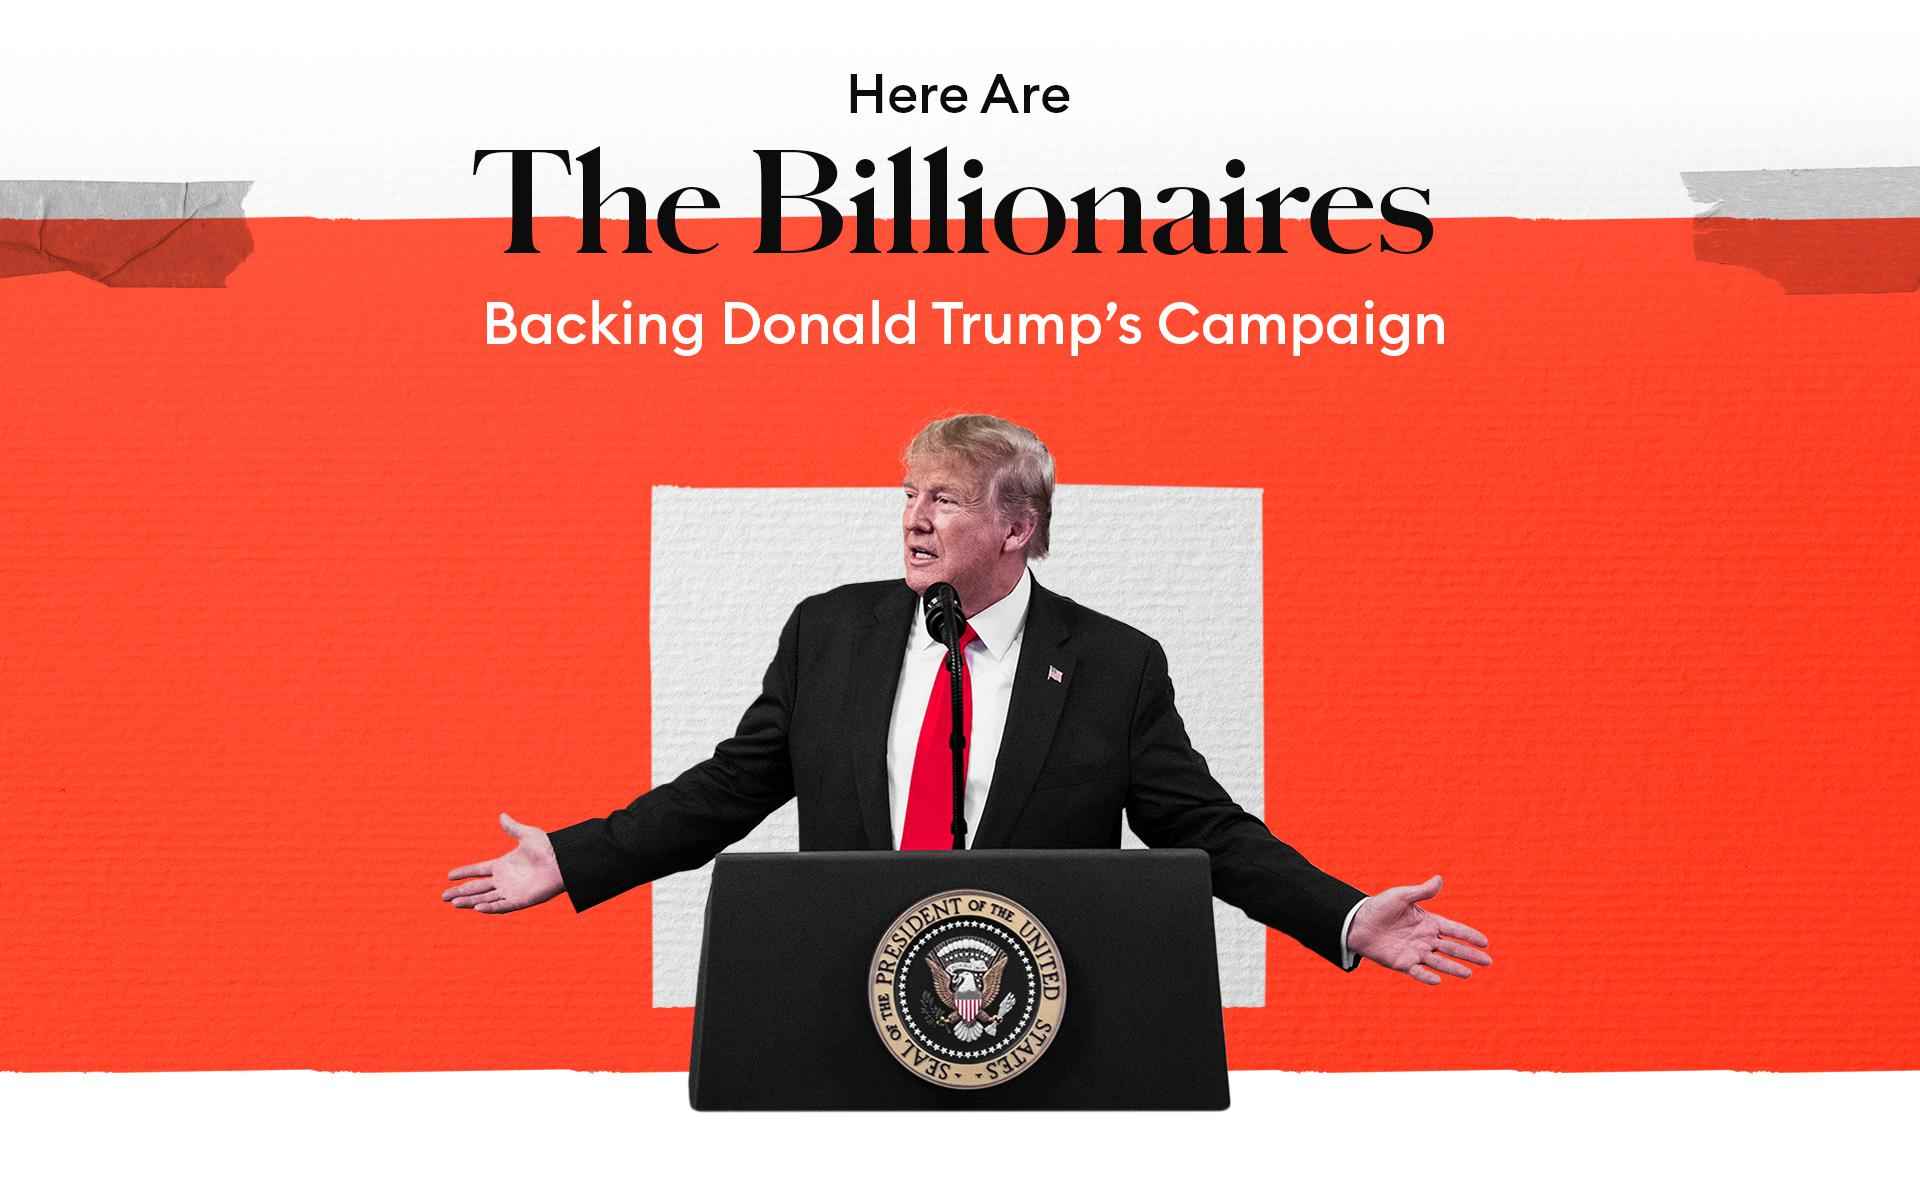 Here Are The Billionaires Backing Donald Trump's Campaign